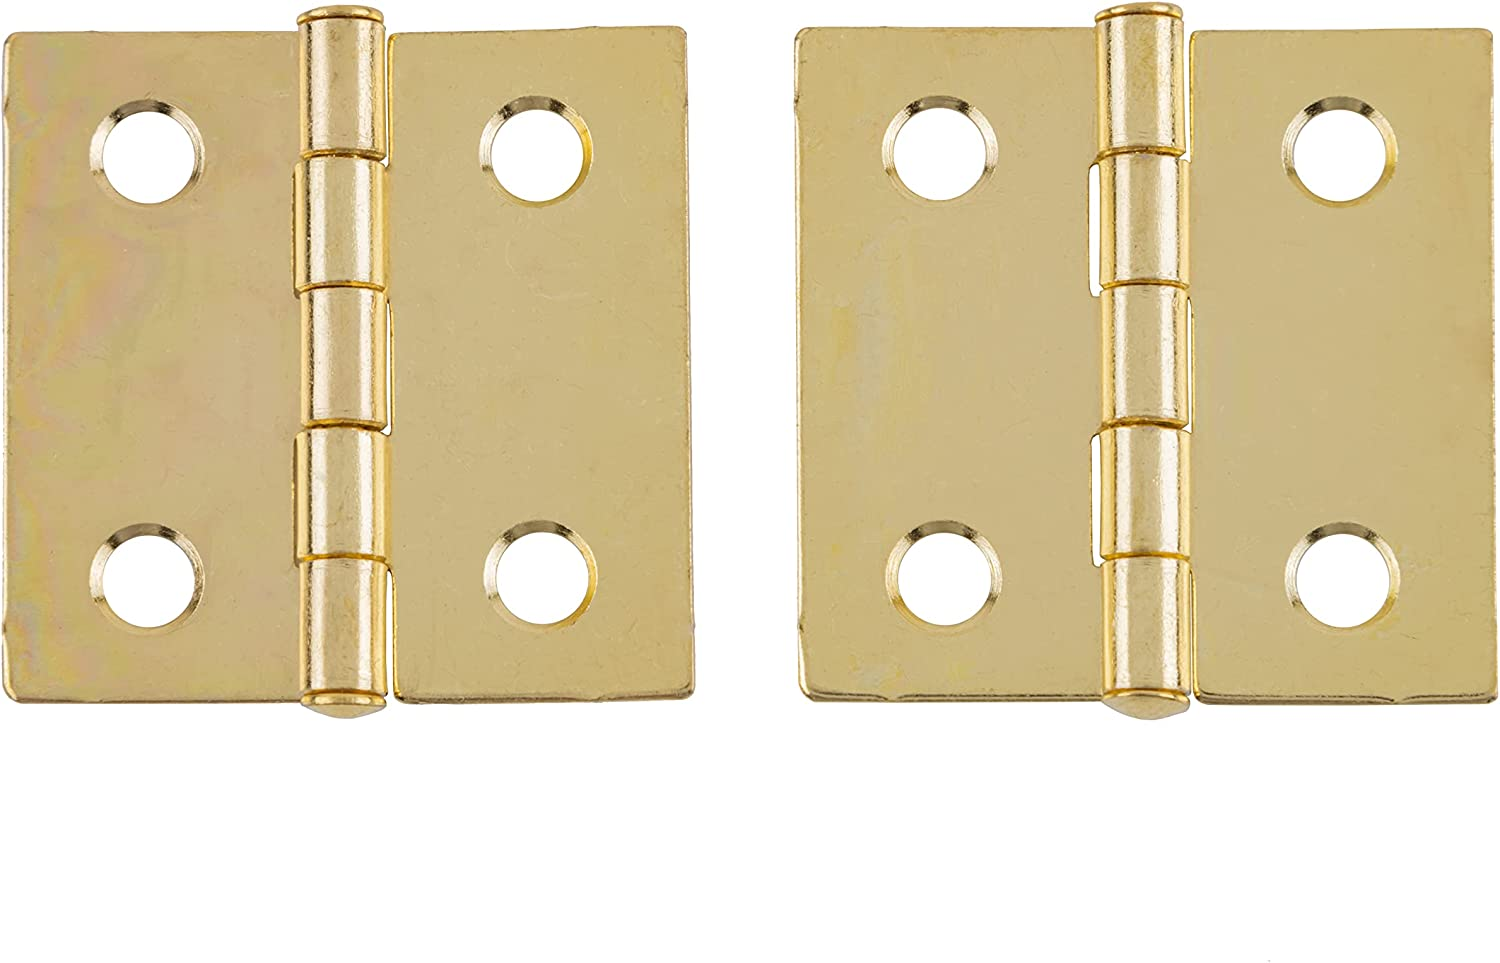 Seattle Mall Bright Brass Butt Hinge 1 Free shipping anywhere in the nation 2